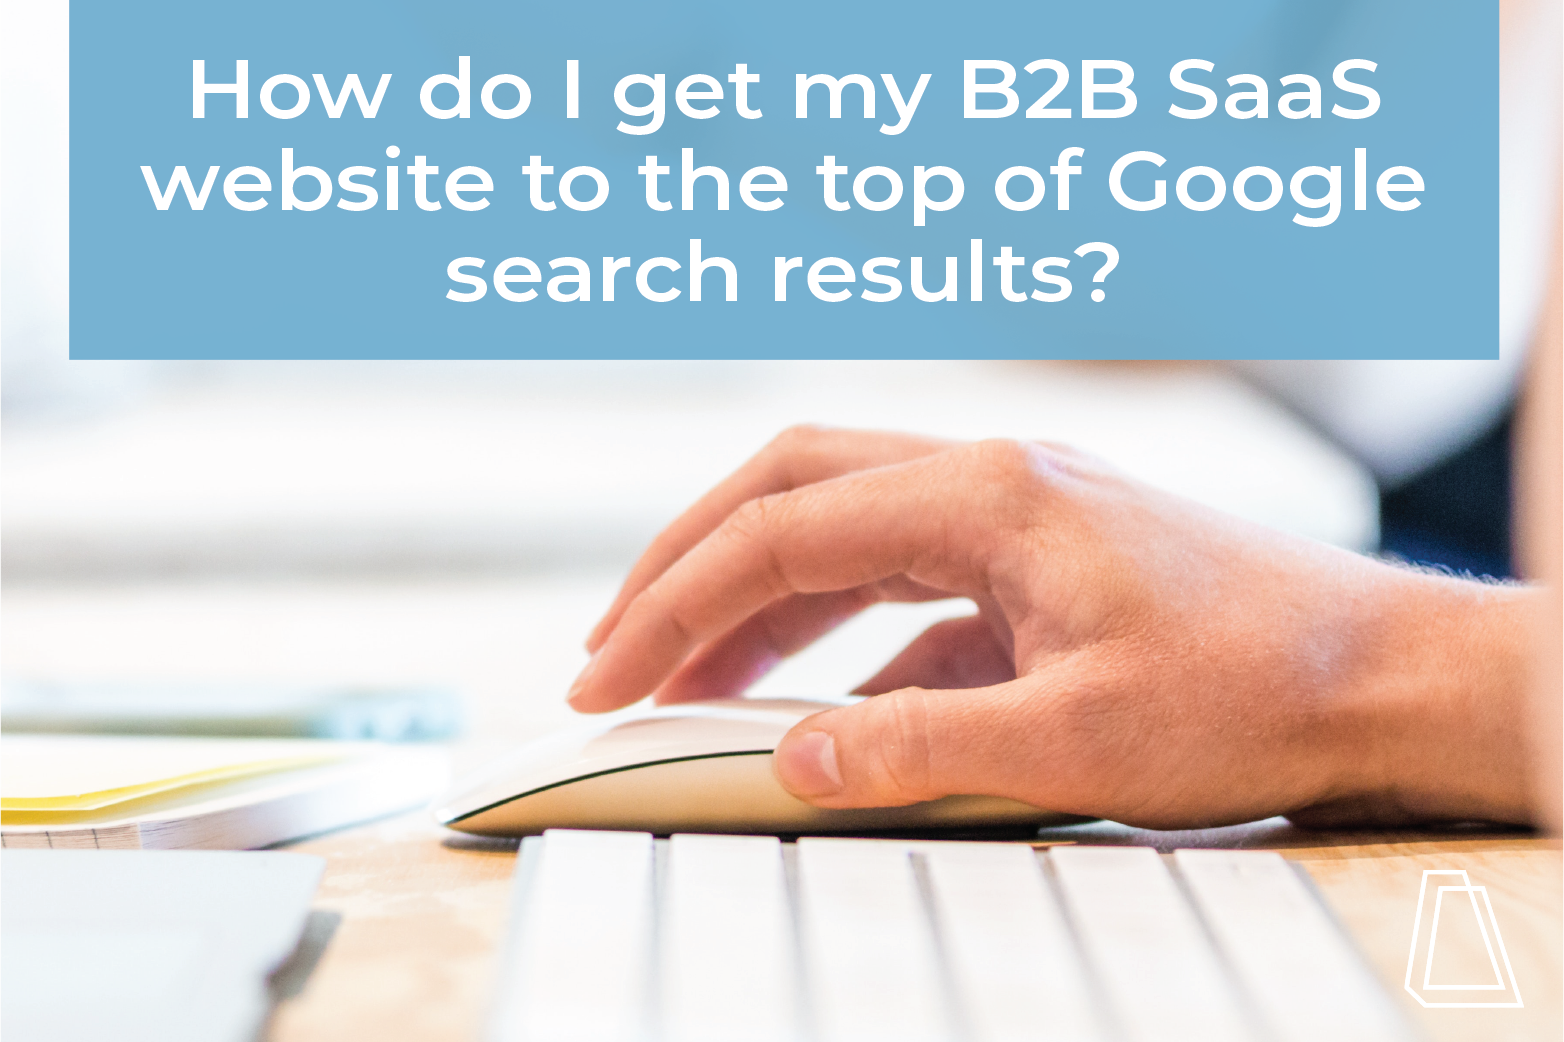 How do I get my B2B SaaS website to the top of Google search results?